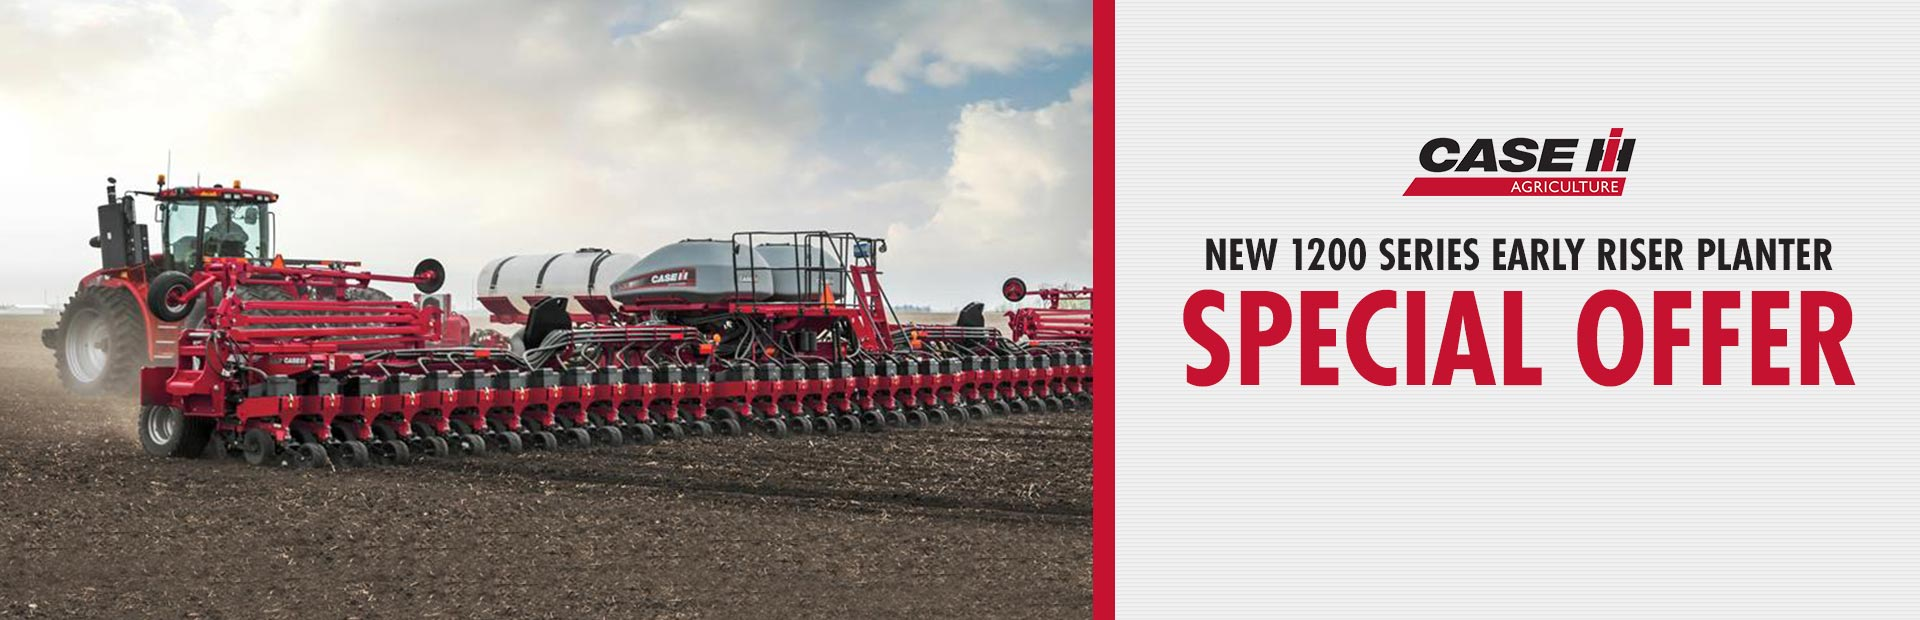 Case IH: New 1200 Series Early Riser Planter Special Offer